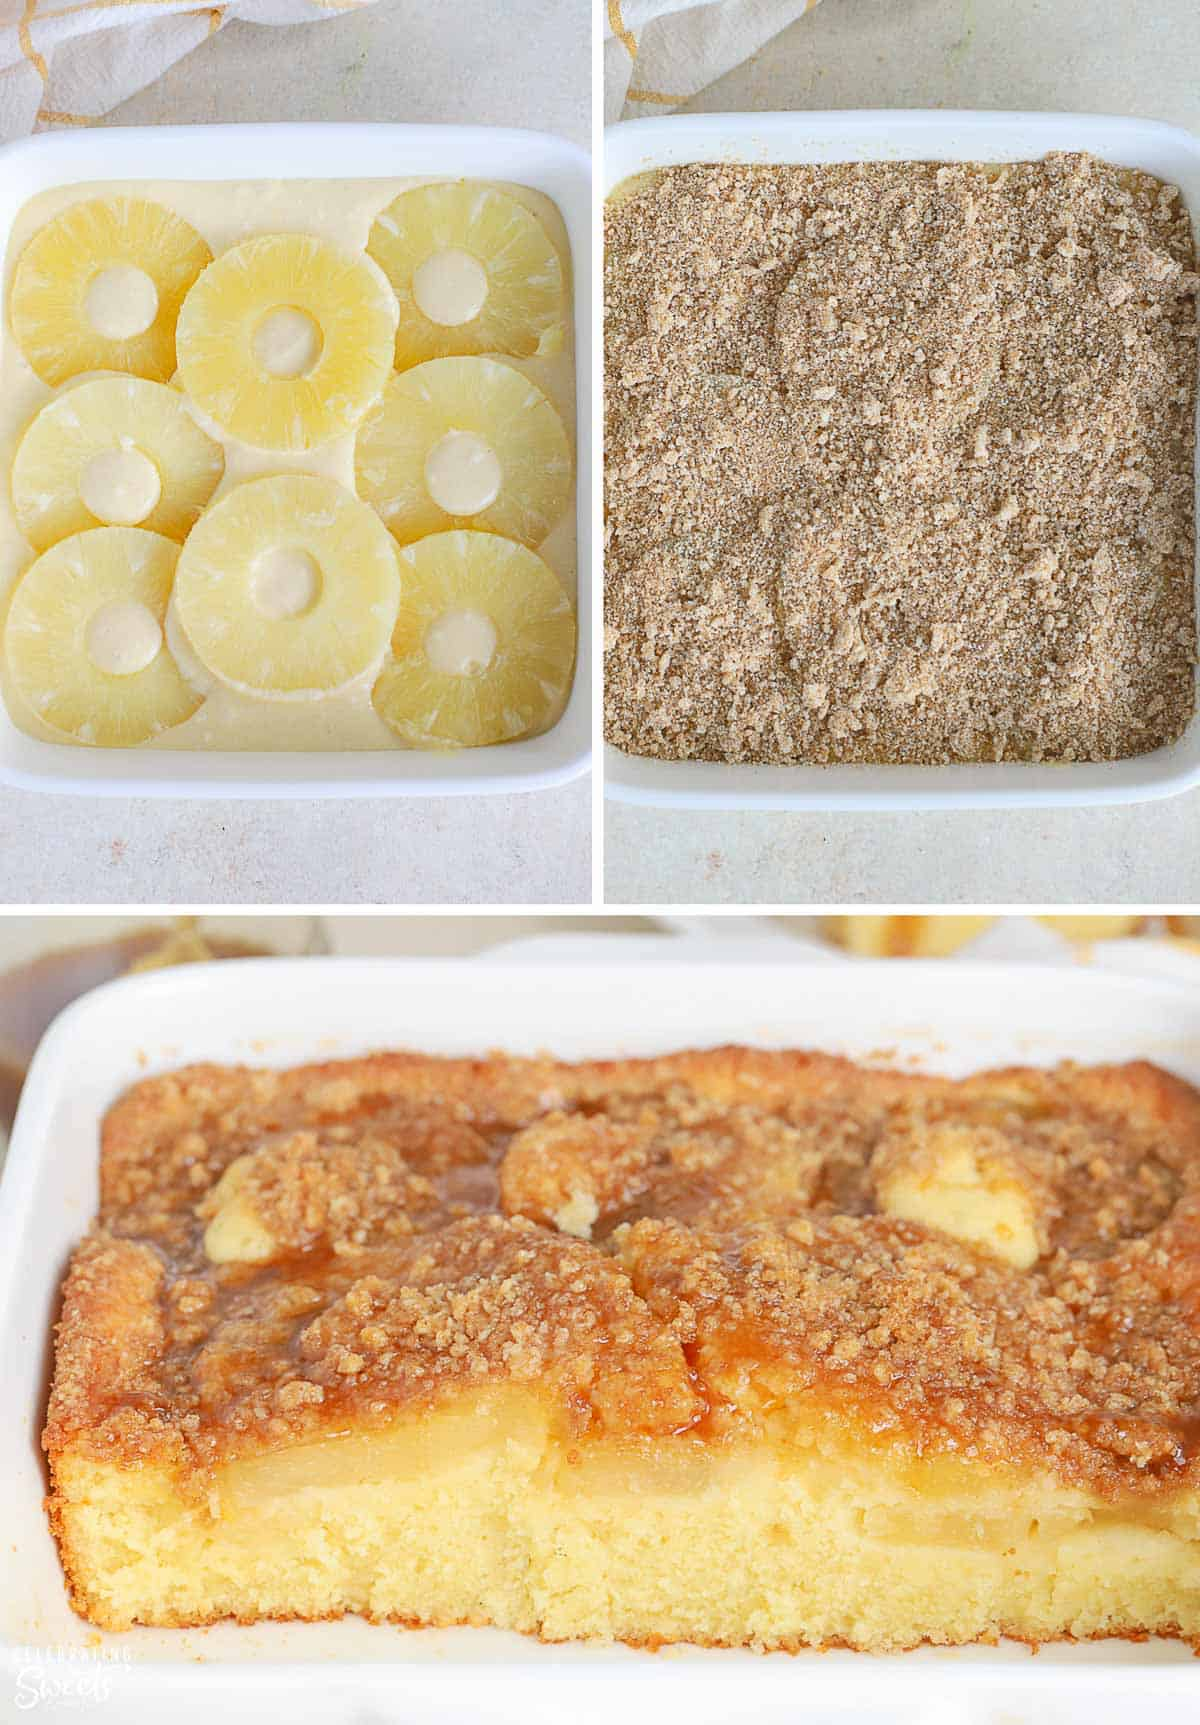 Collage of pineapple cake and pineapple cake batter in a baking dish